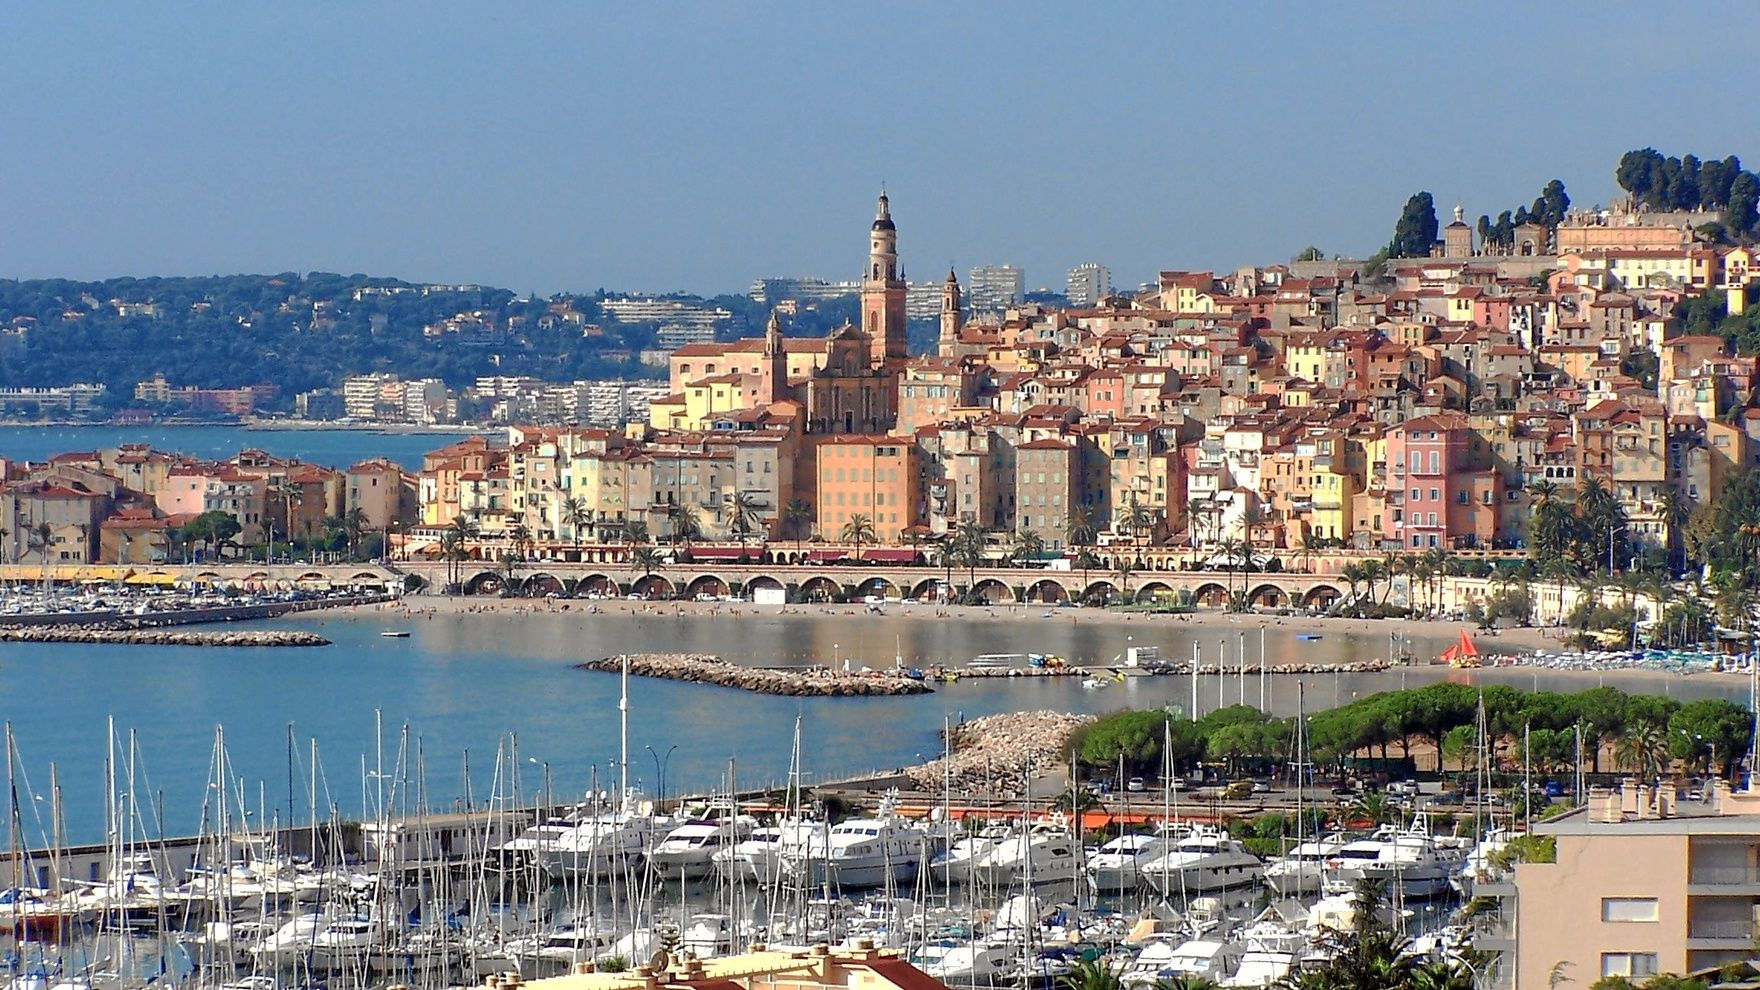 A voyage along the Cote d'Azur from Genoa to Toulon